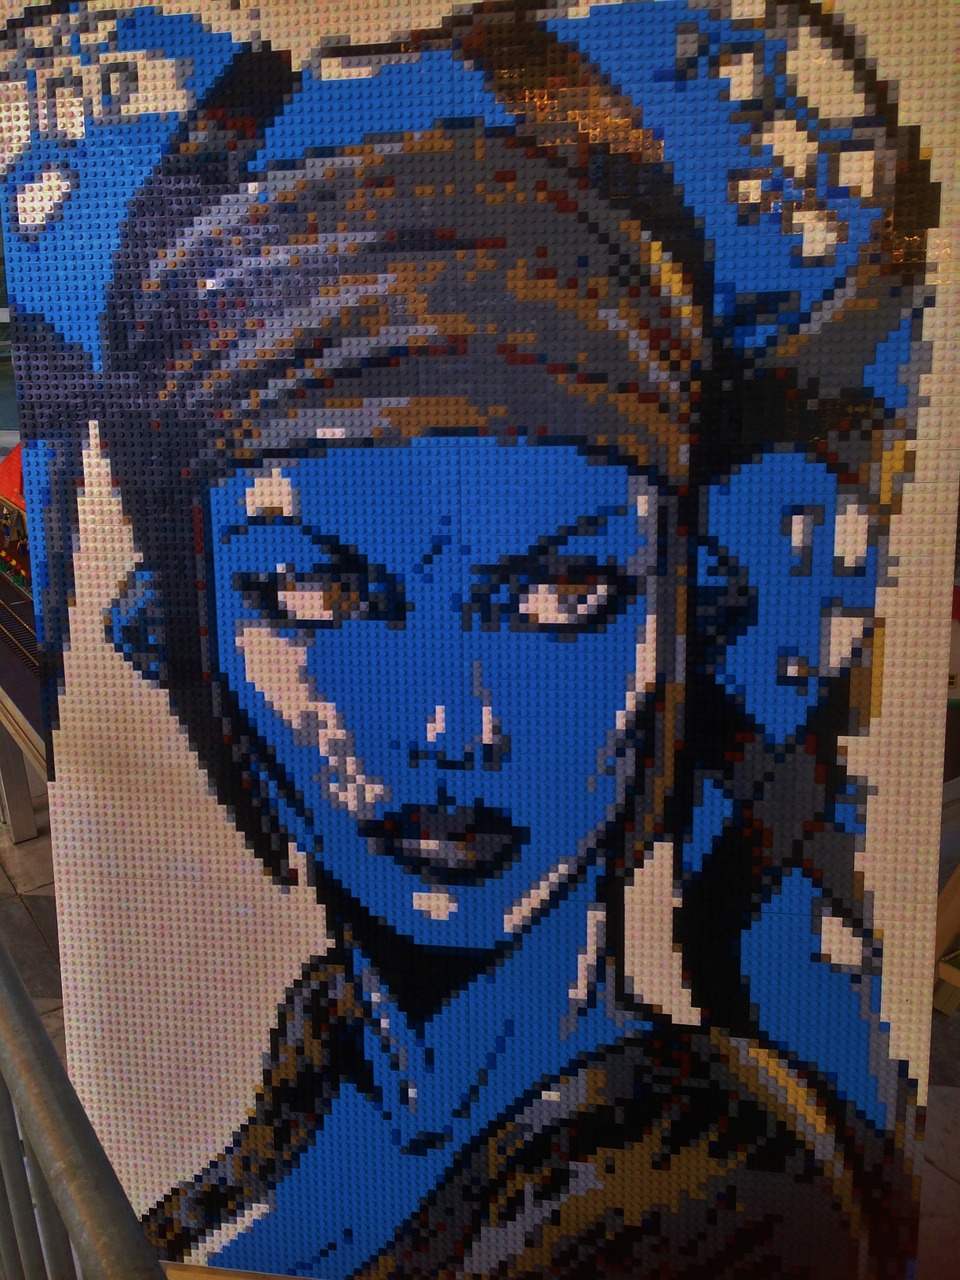 lego mosaic blue free photo